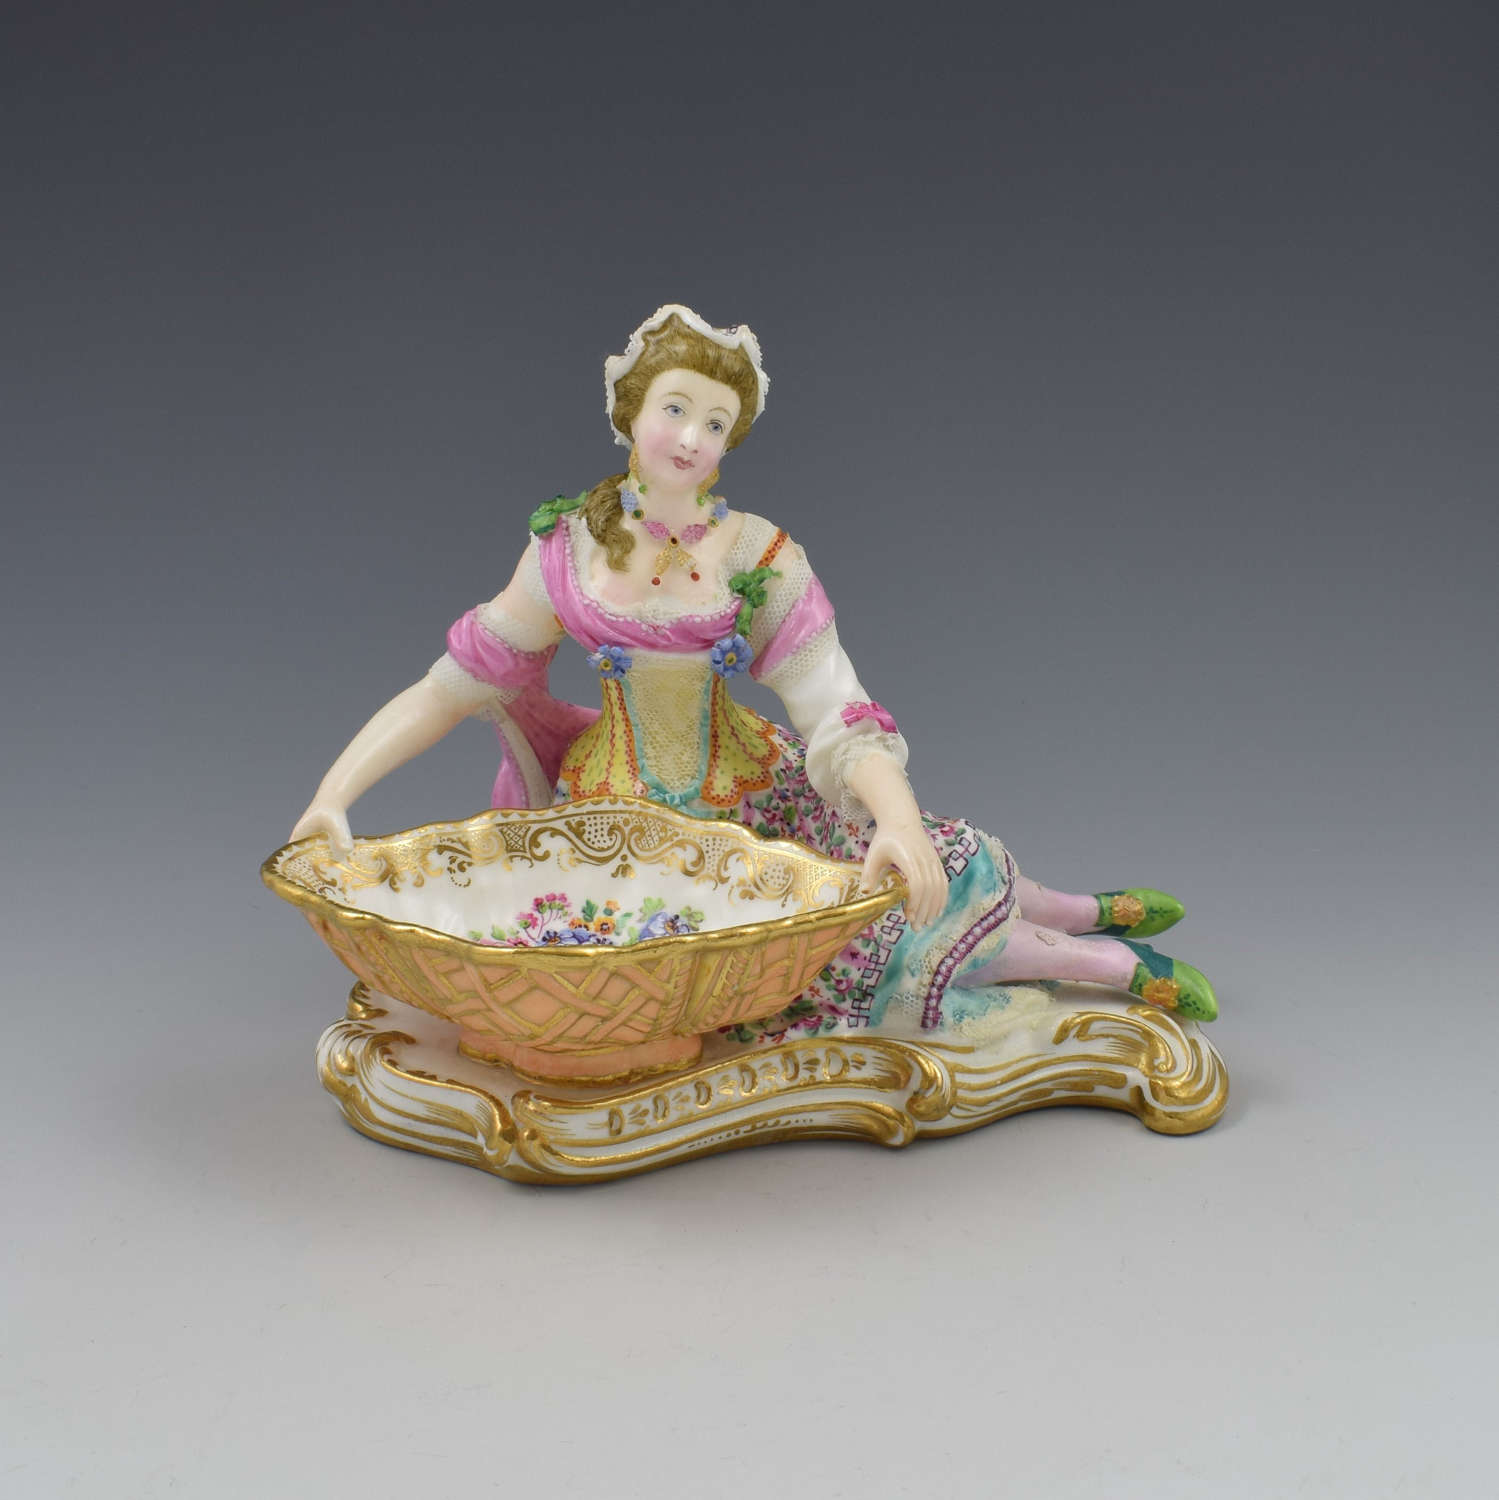 Minton Porcelain Figure With Lace Reclining Lady With Sweetmeat Basket